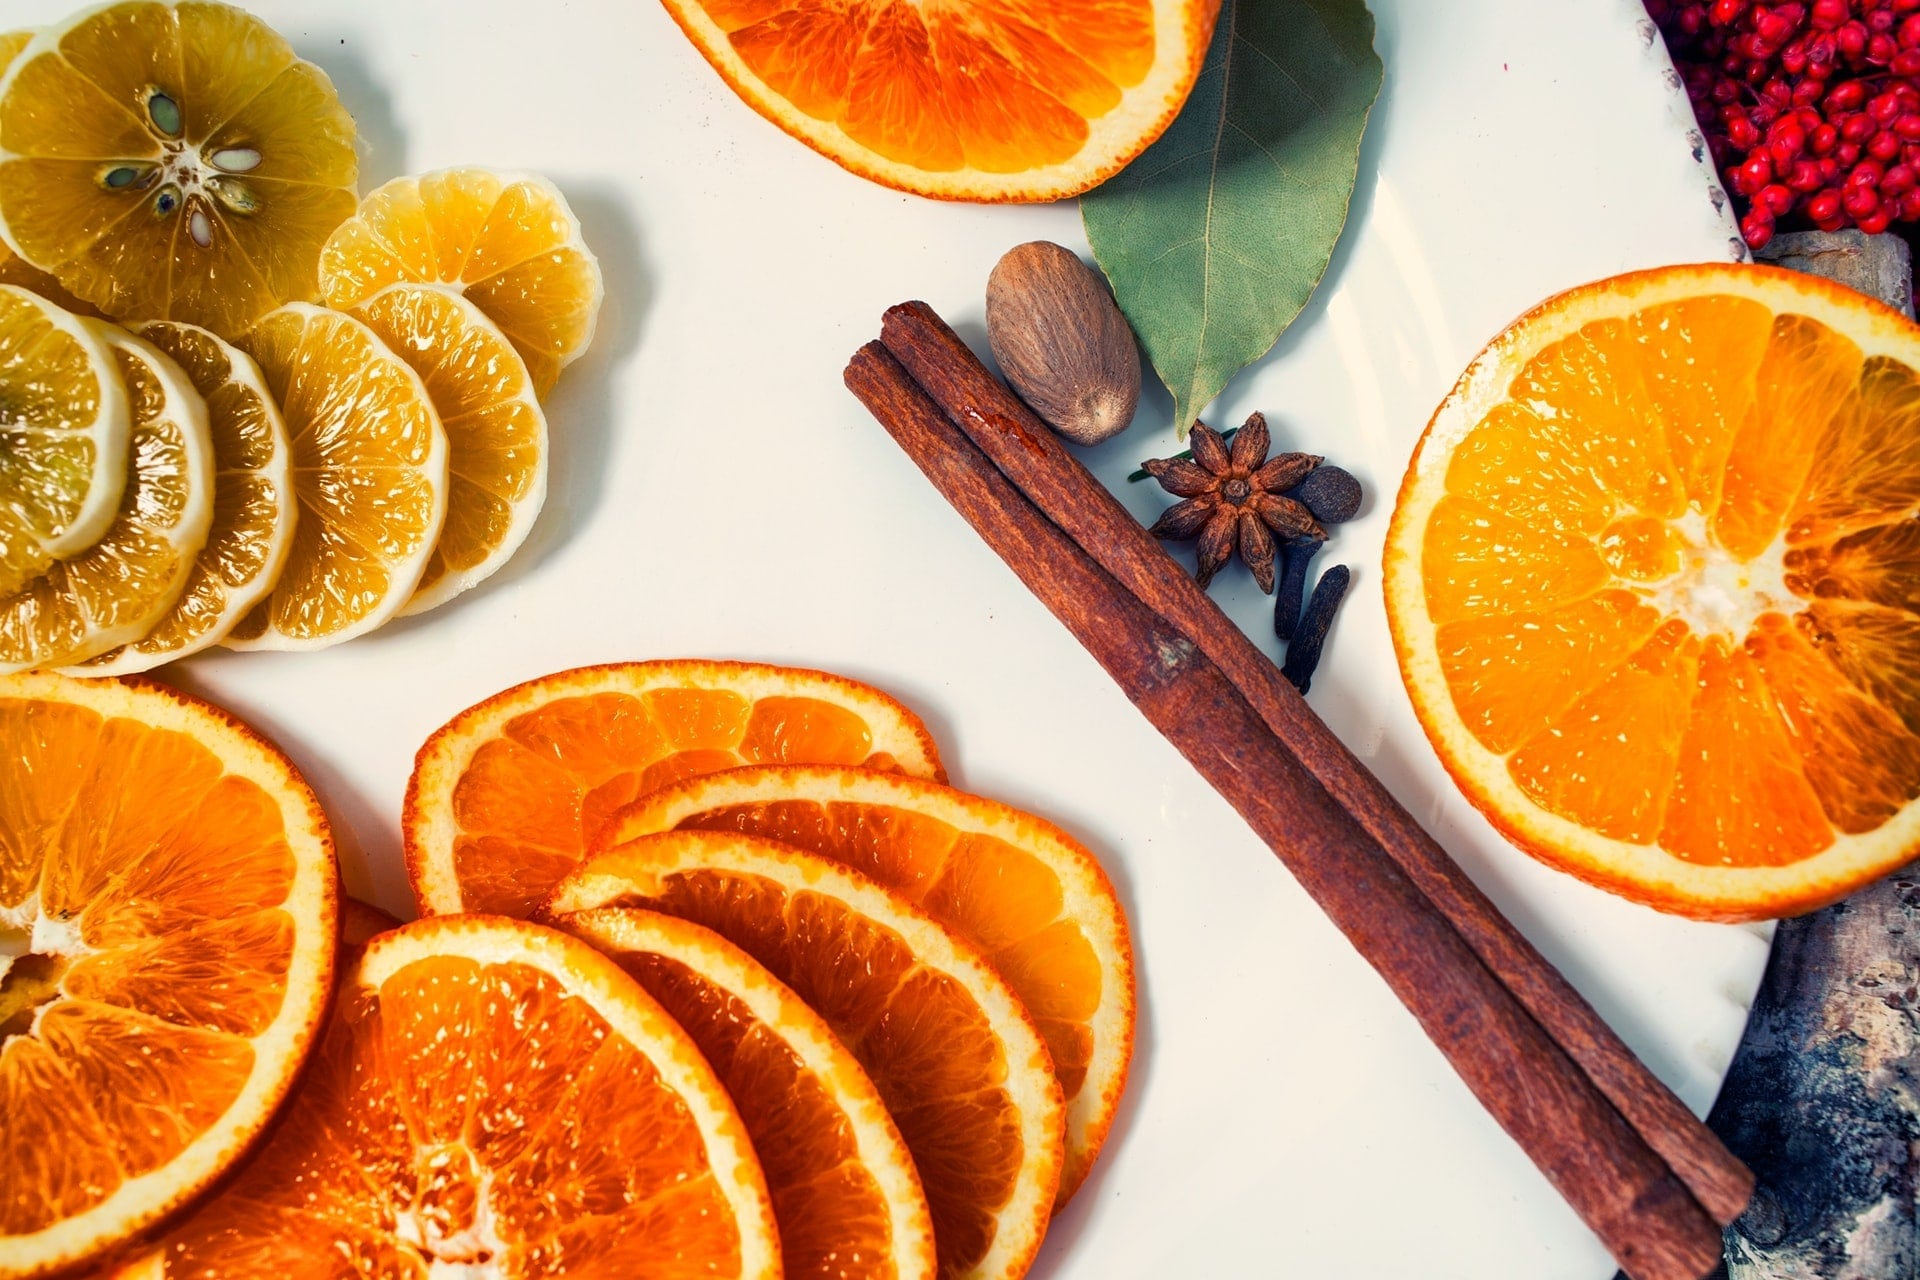 Ingredients for mulled wine recipe